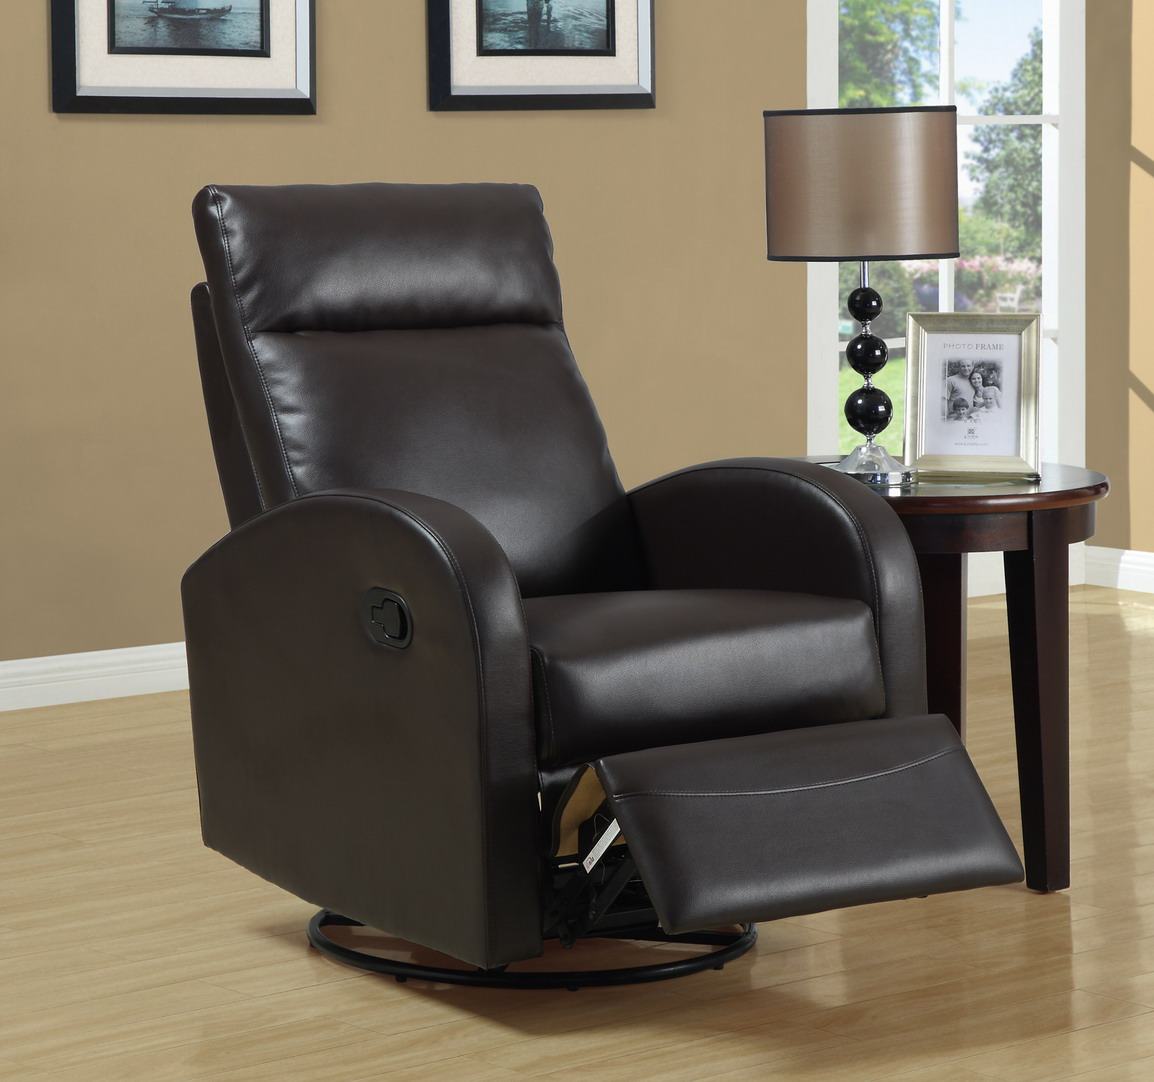 Image of: new swivel recliner chairs gallery